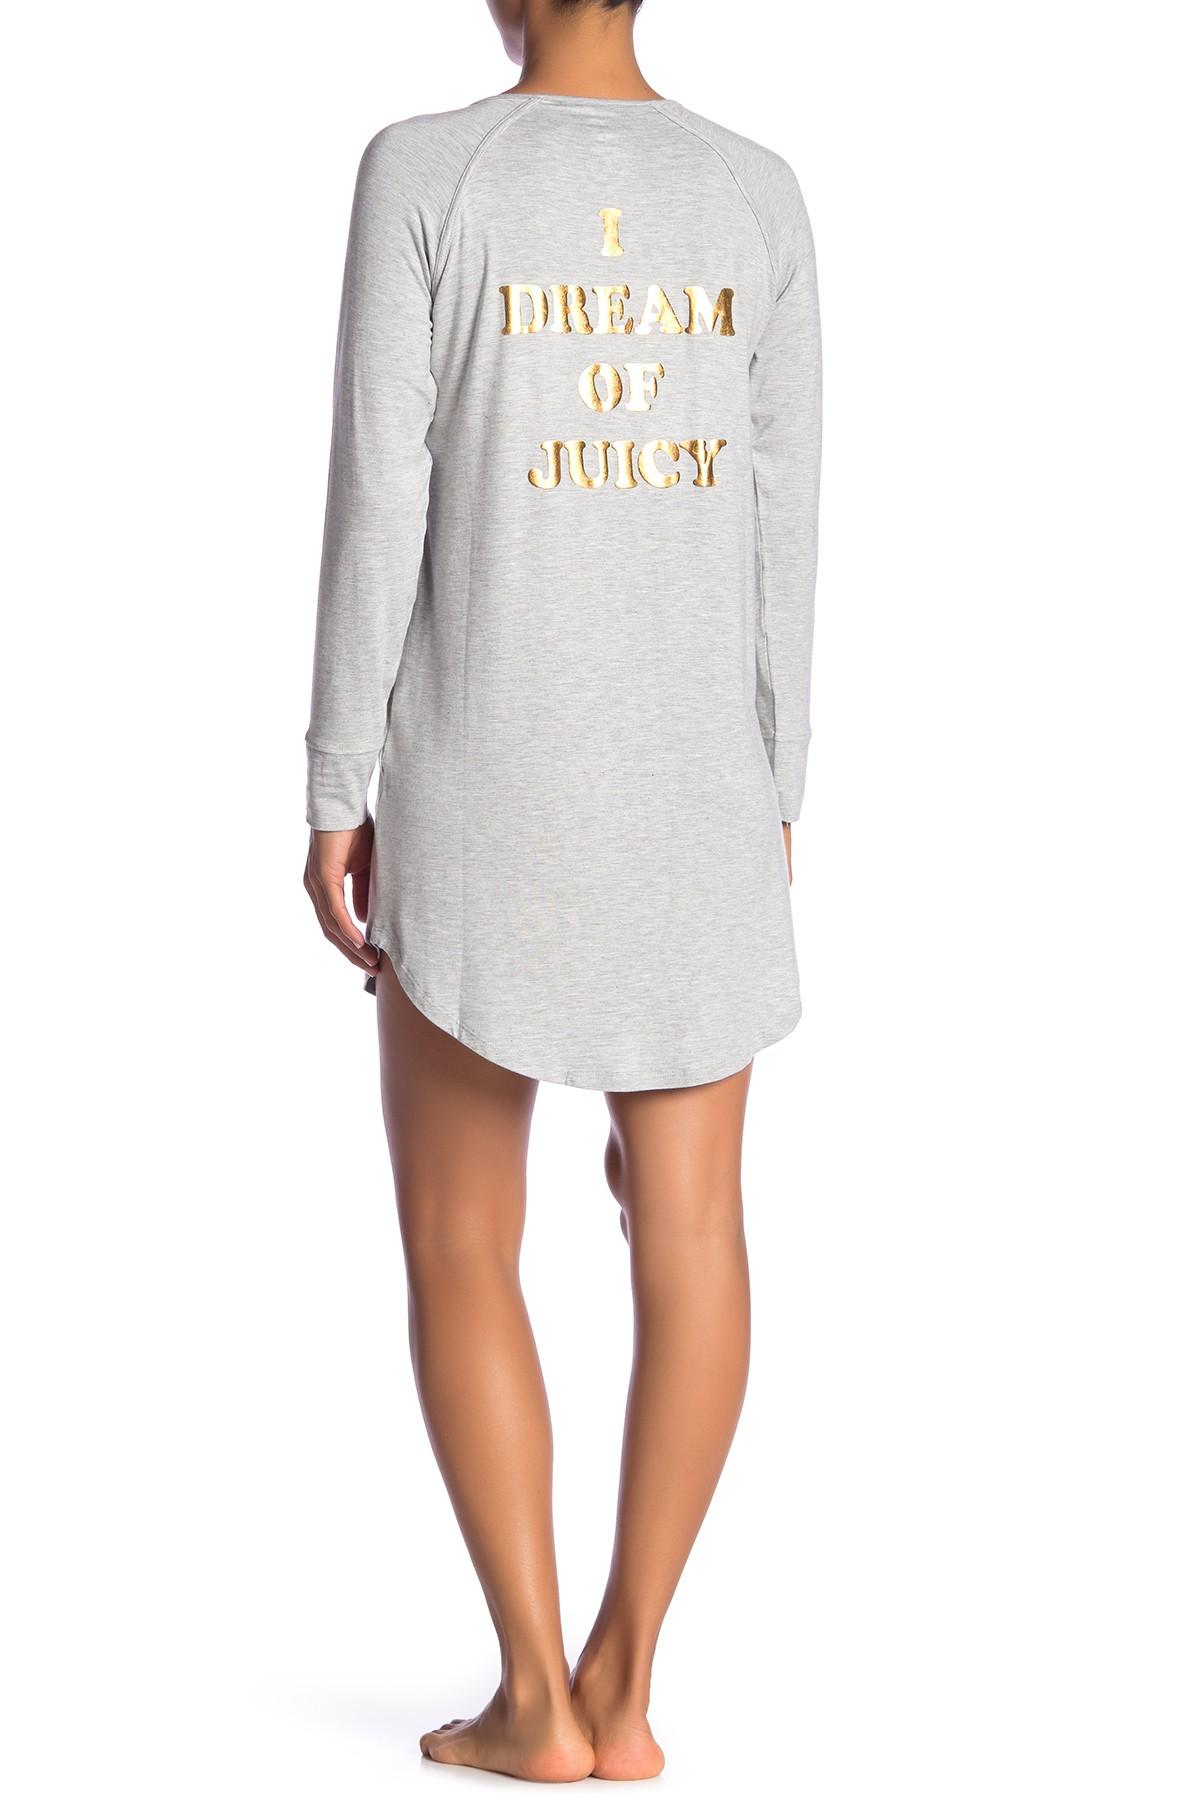 adfd74e864ec Lyst - Juicy Couture I Dream Of Juicy Pajama Shirt in Gray